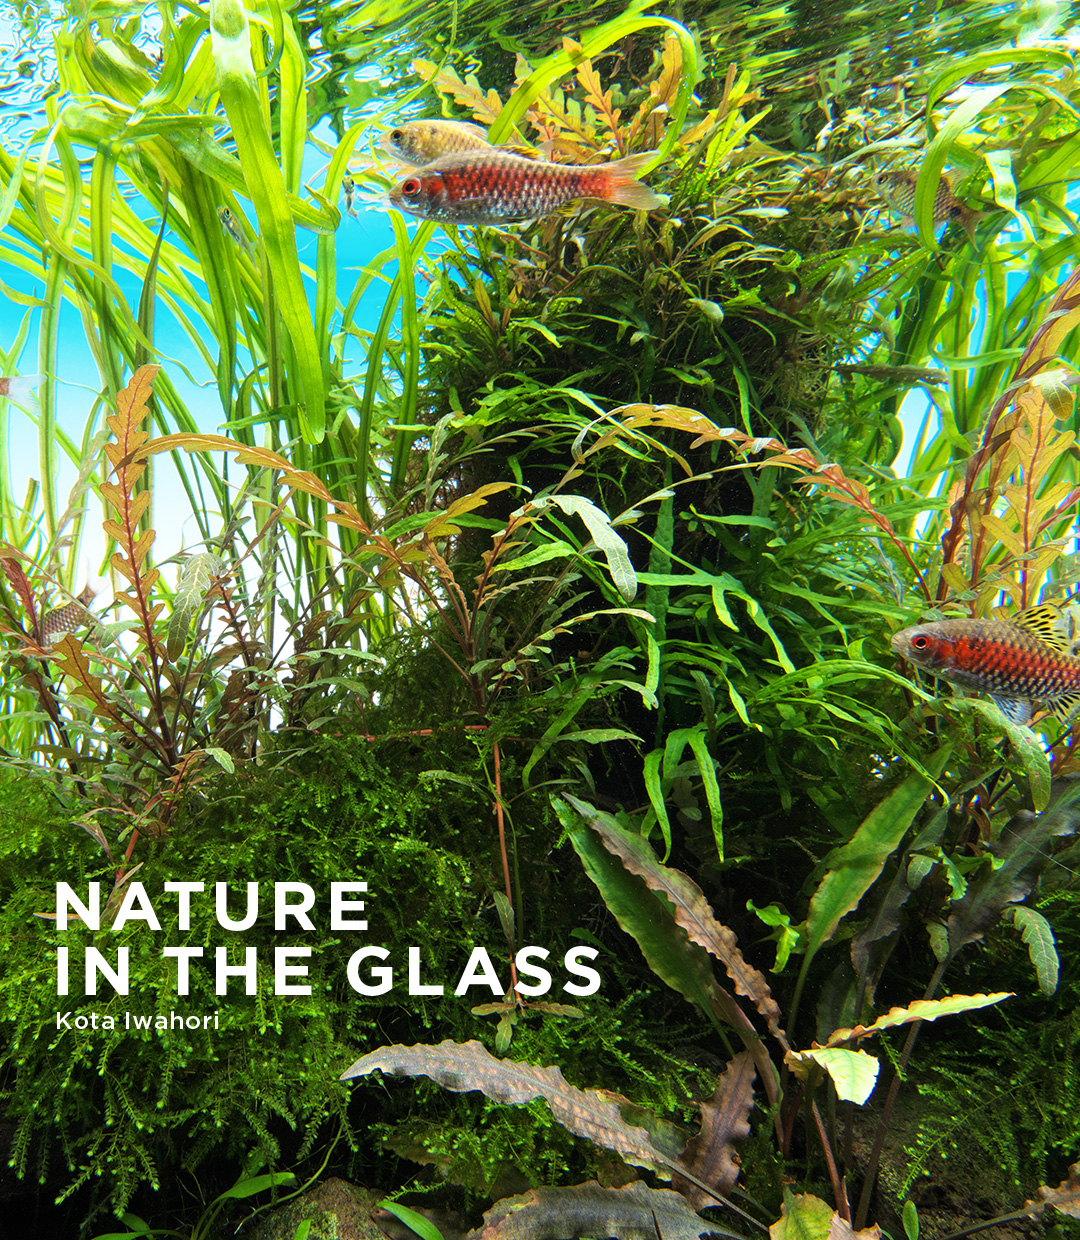 NATURE IN THE GLASS 「川底眩しく」